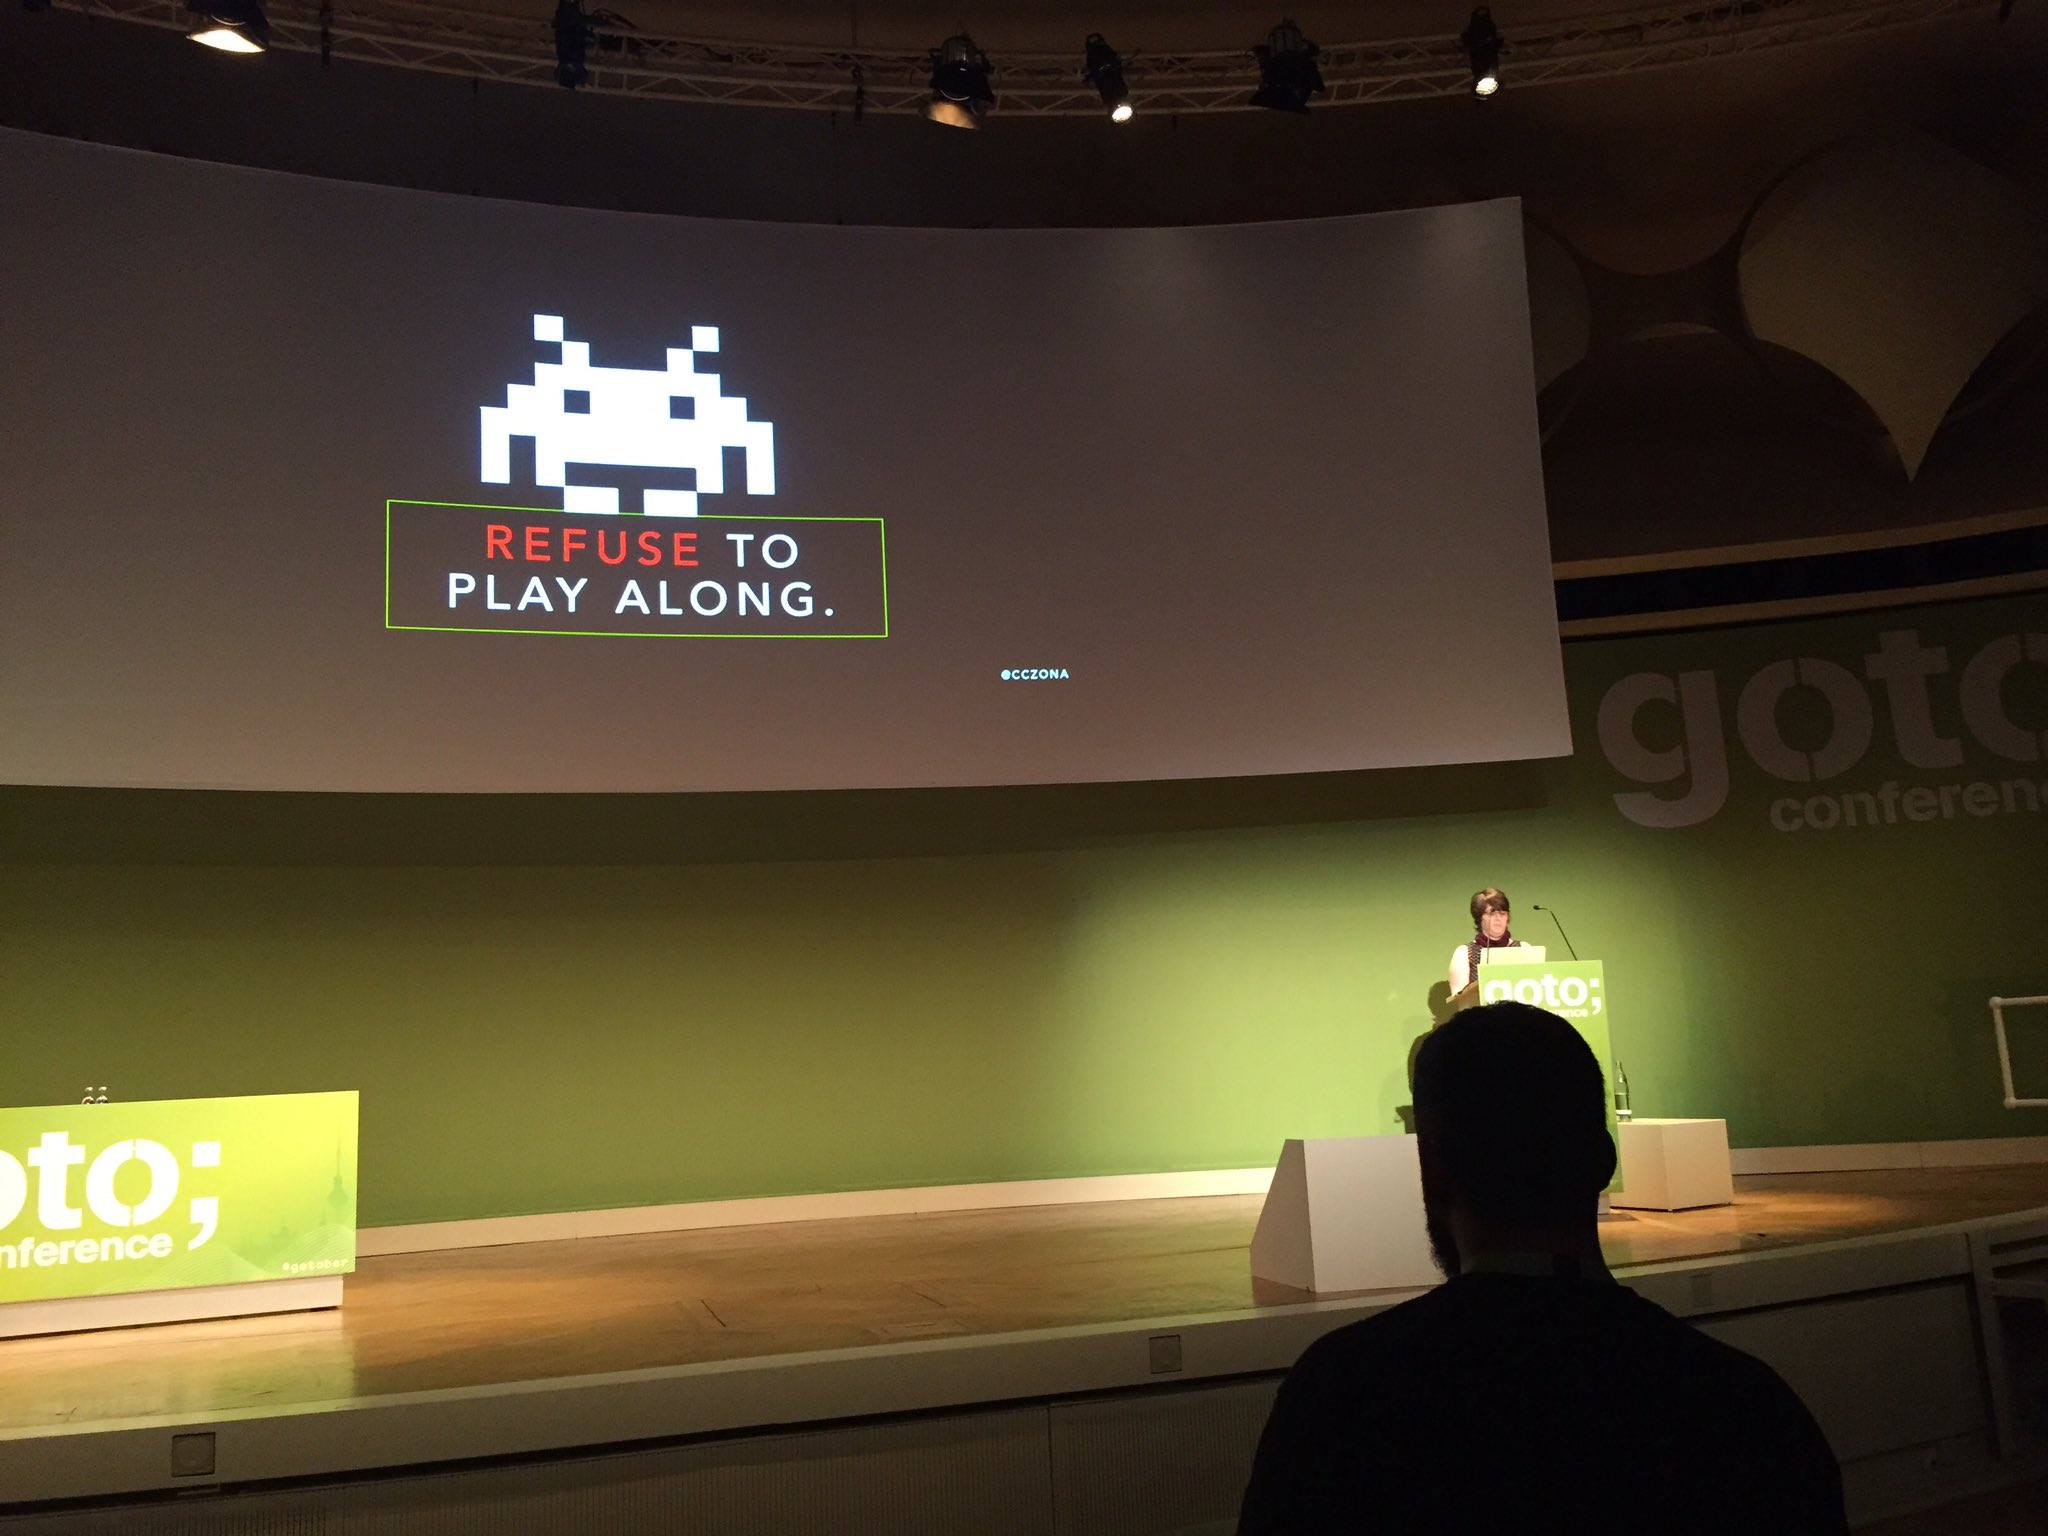 Great and worrying at the same time... great keynote by @cczona @GOTOber Consequences of an insightful algorithm https://t.co/LwRrdAZV2q